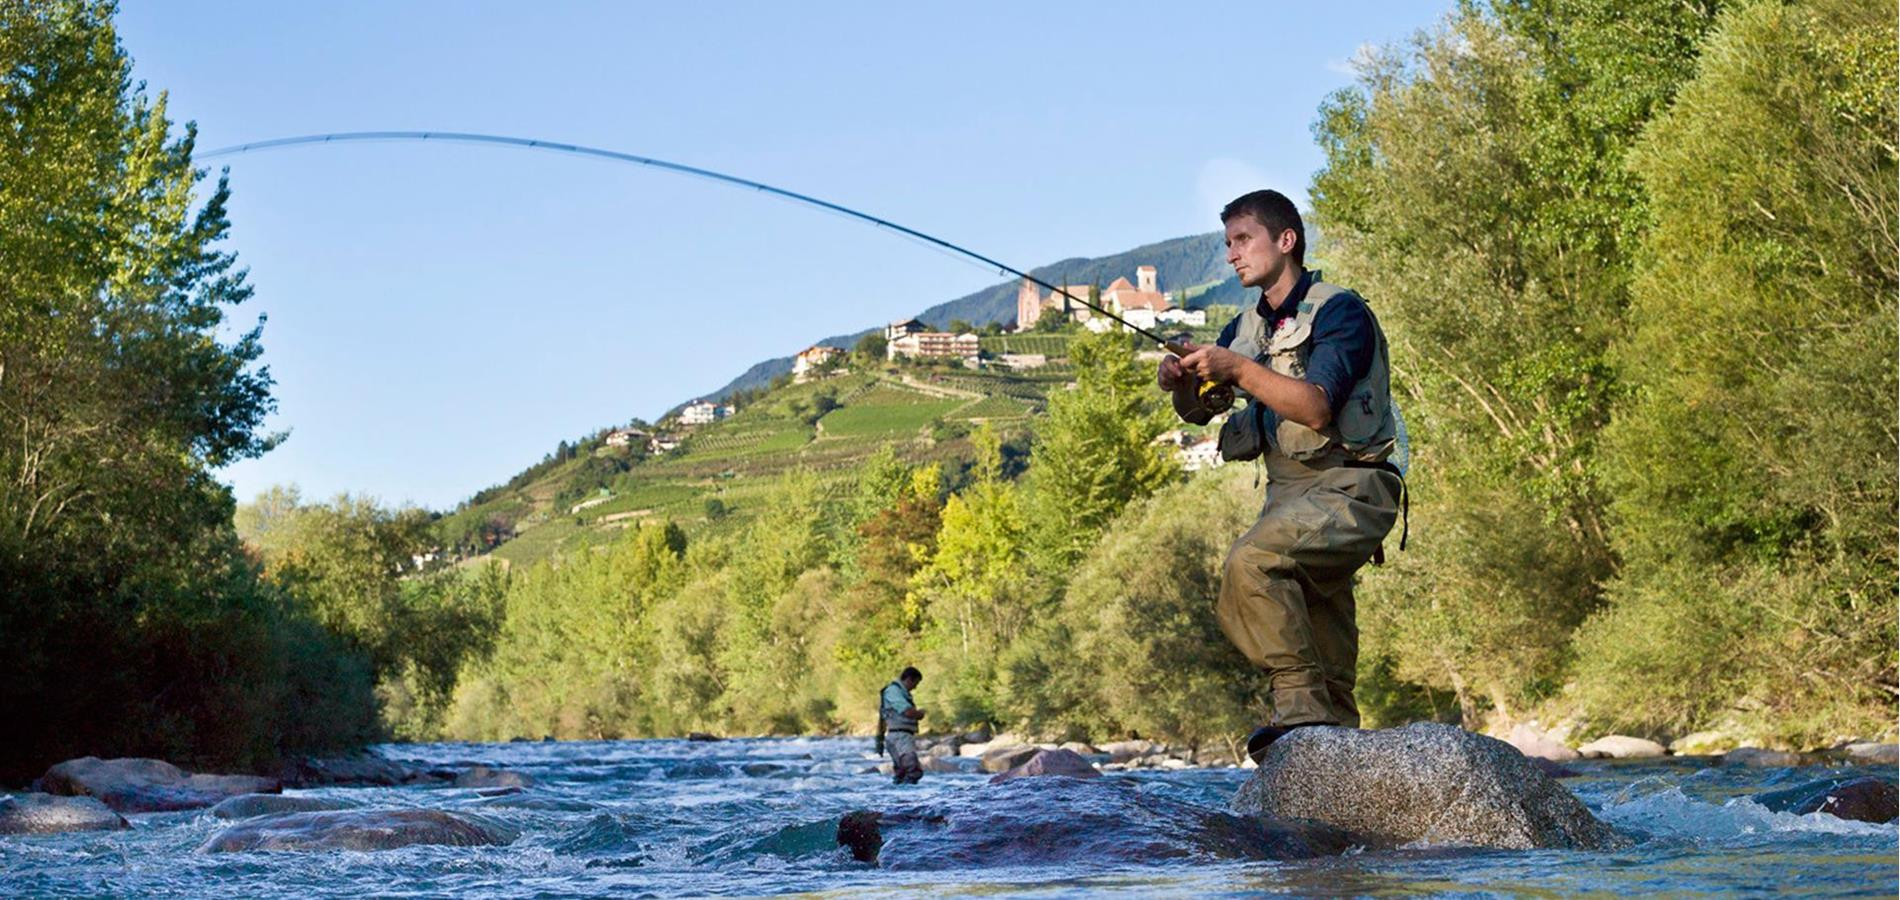 Fishing in Scena near Merano in South Tyrol